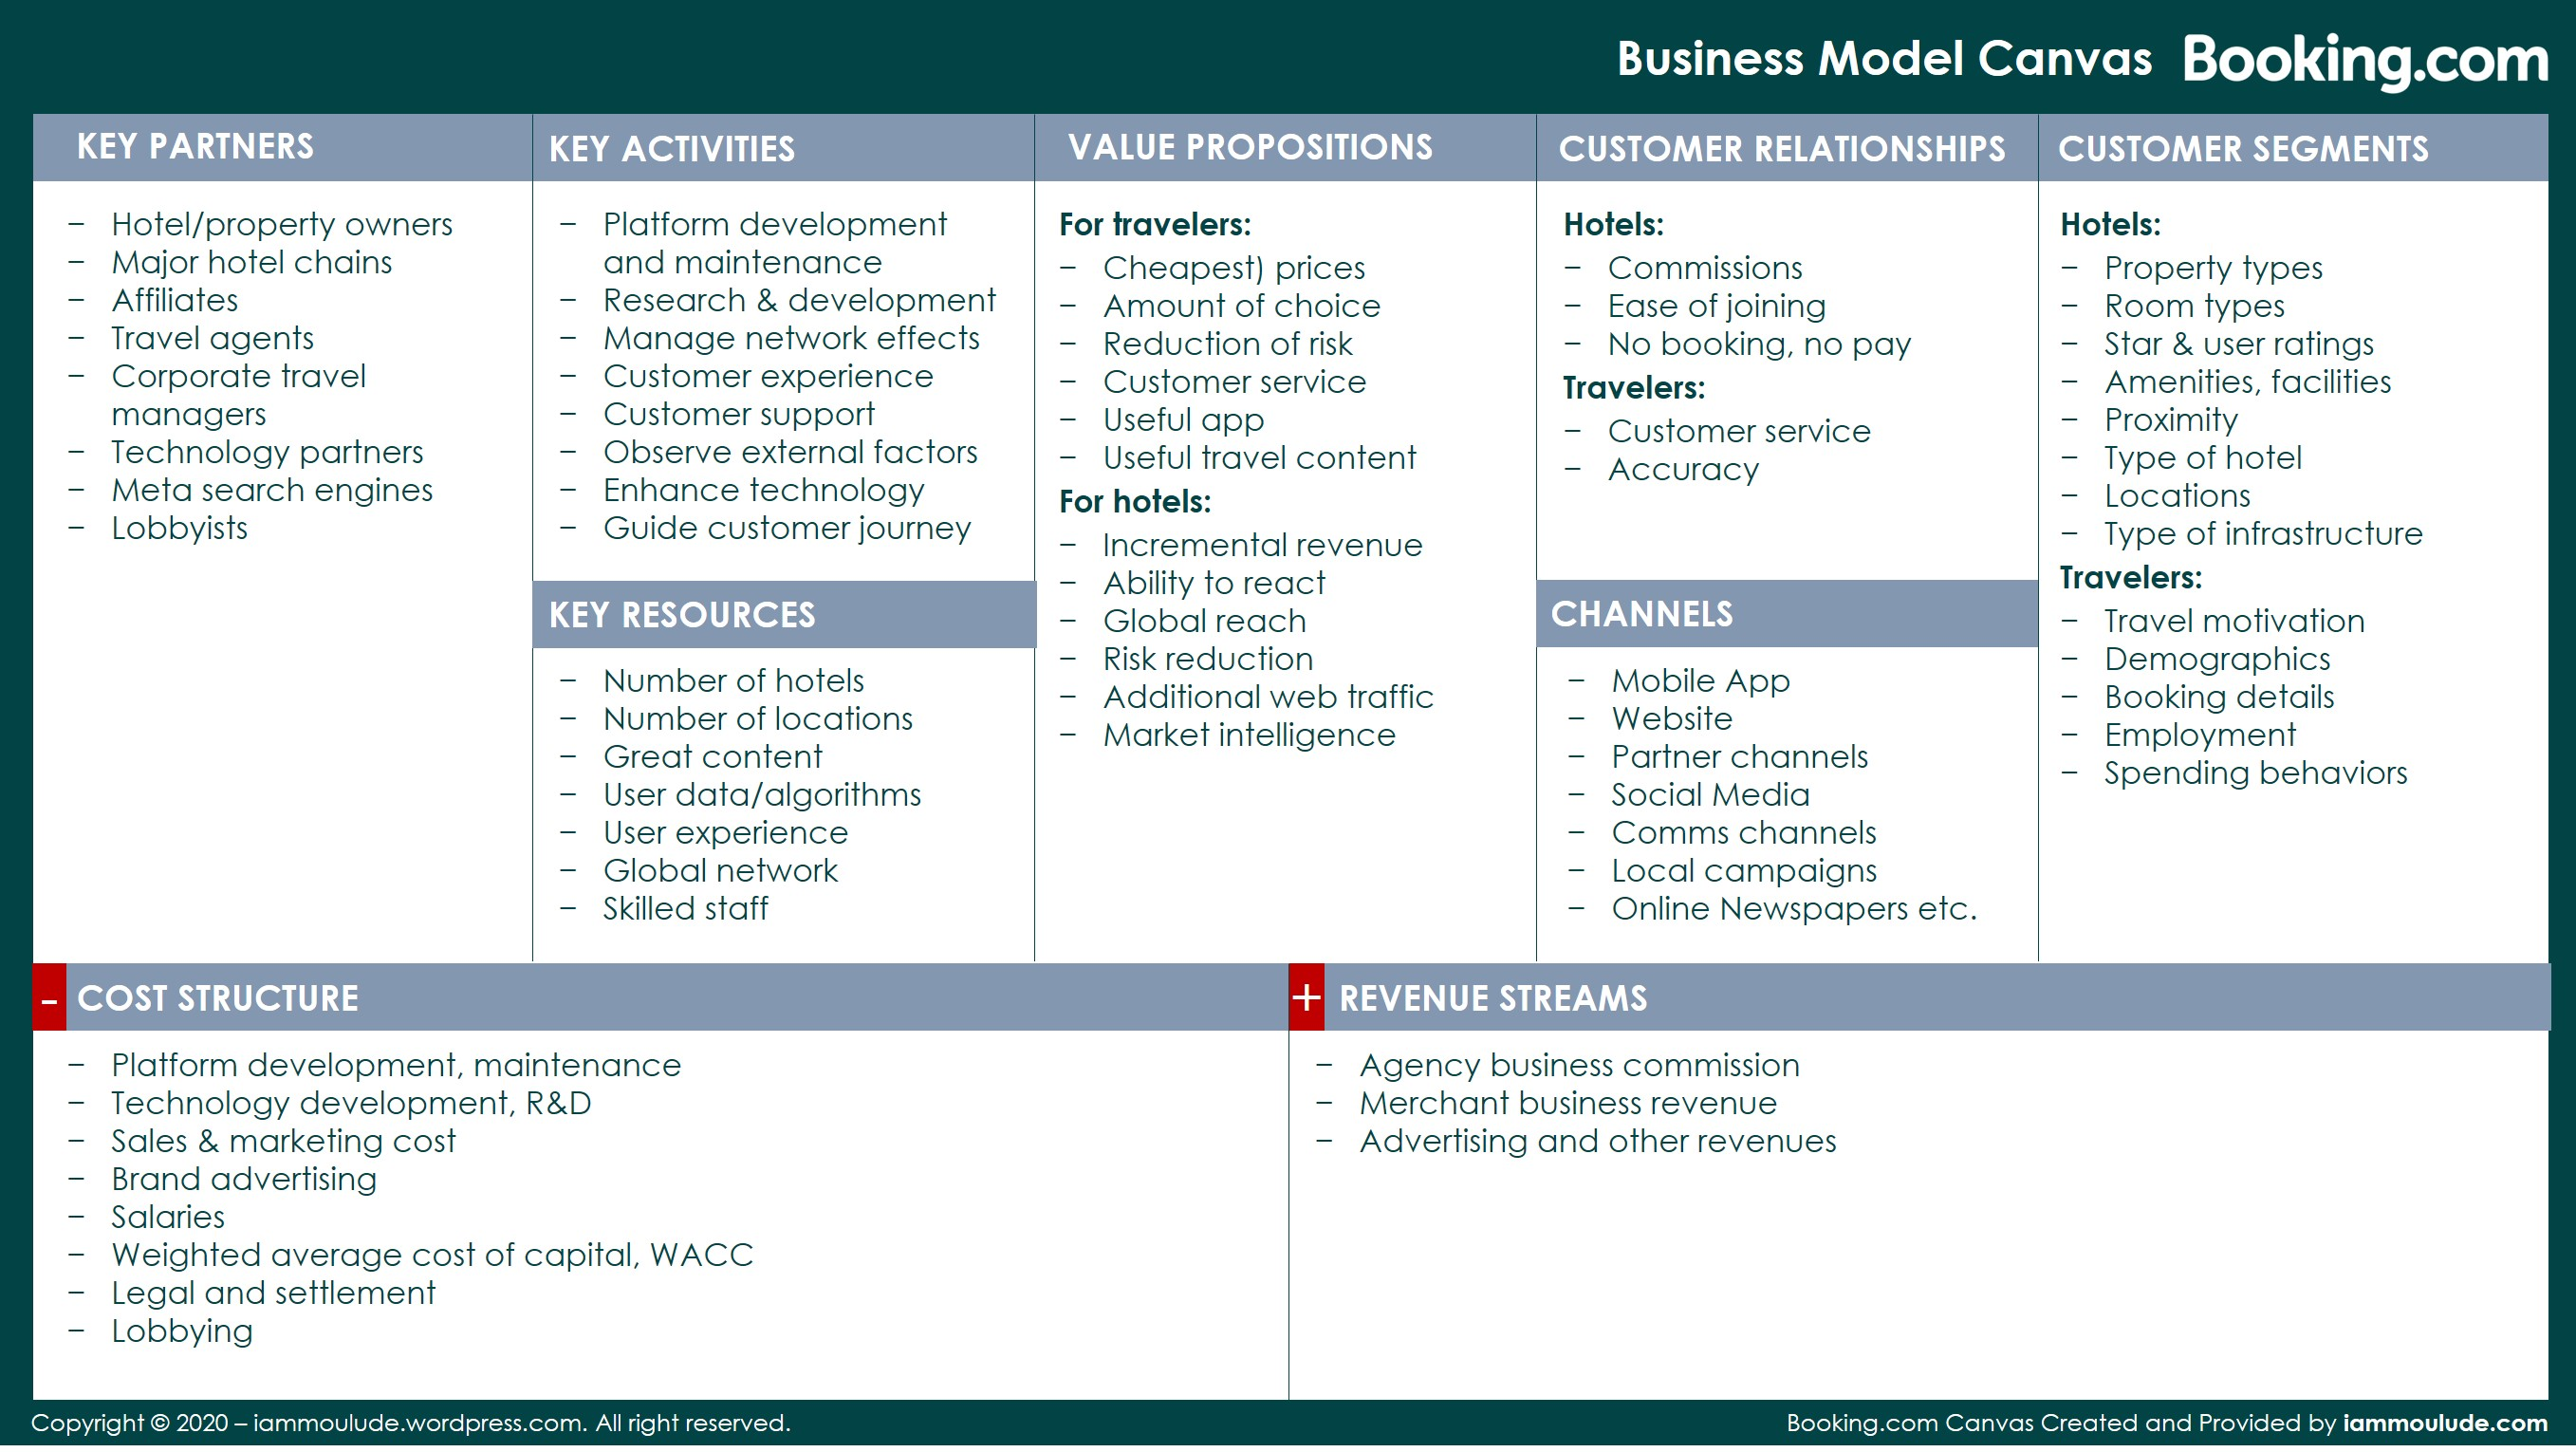 Business Model Canvas_booking.com Example